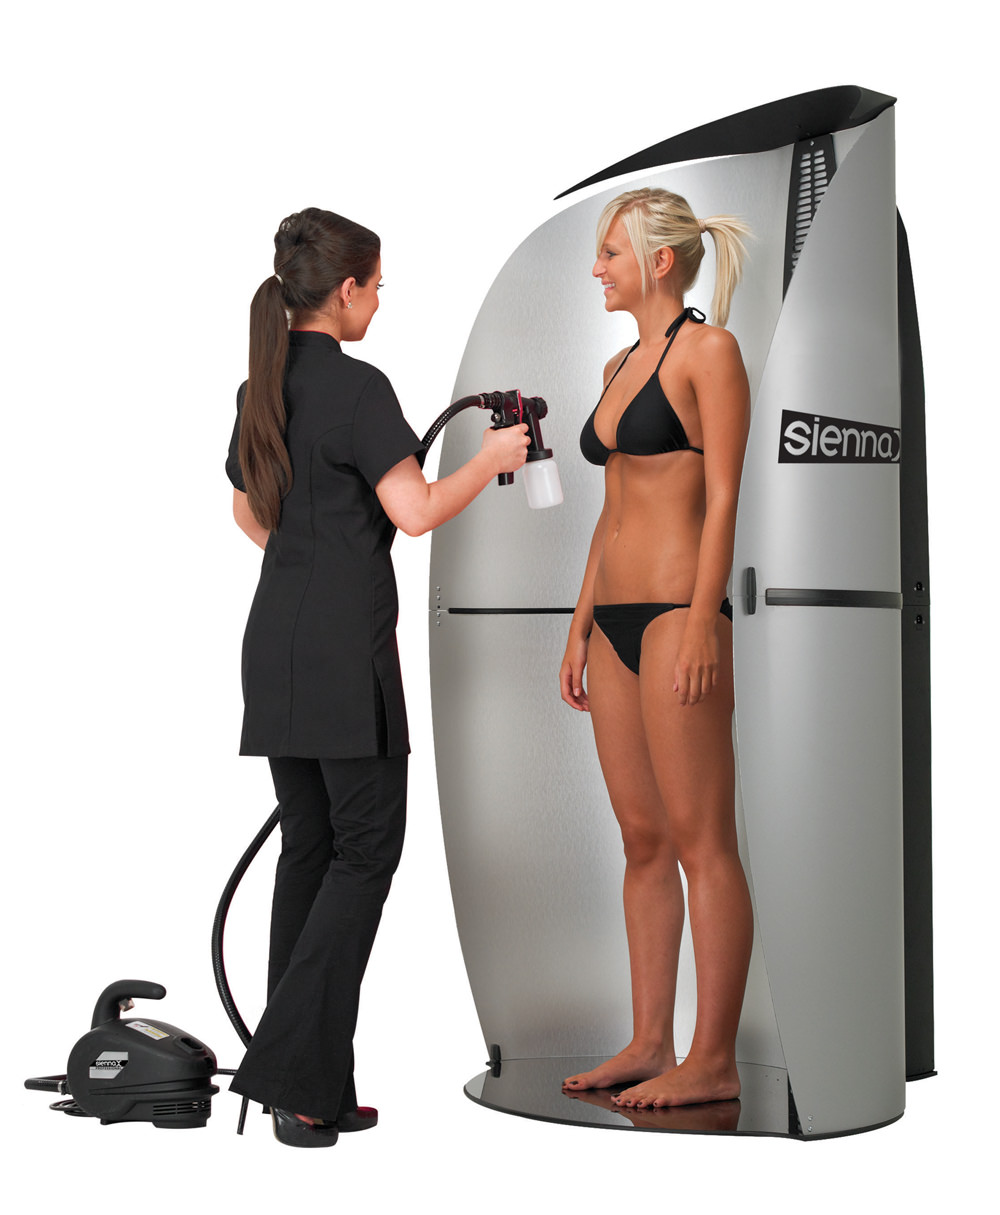 A woman gets a spray tan from a professional